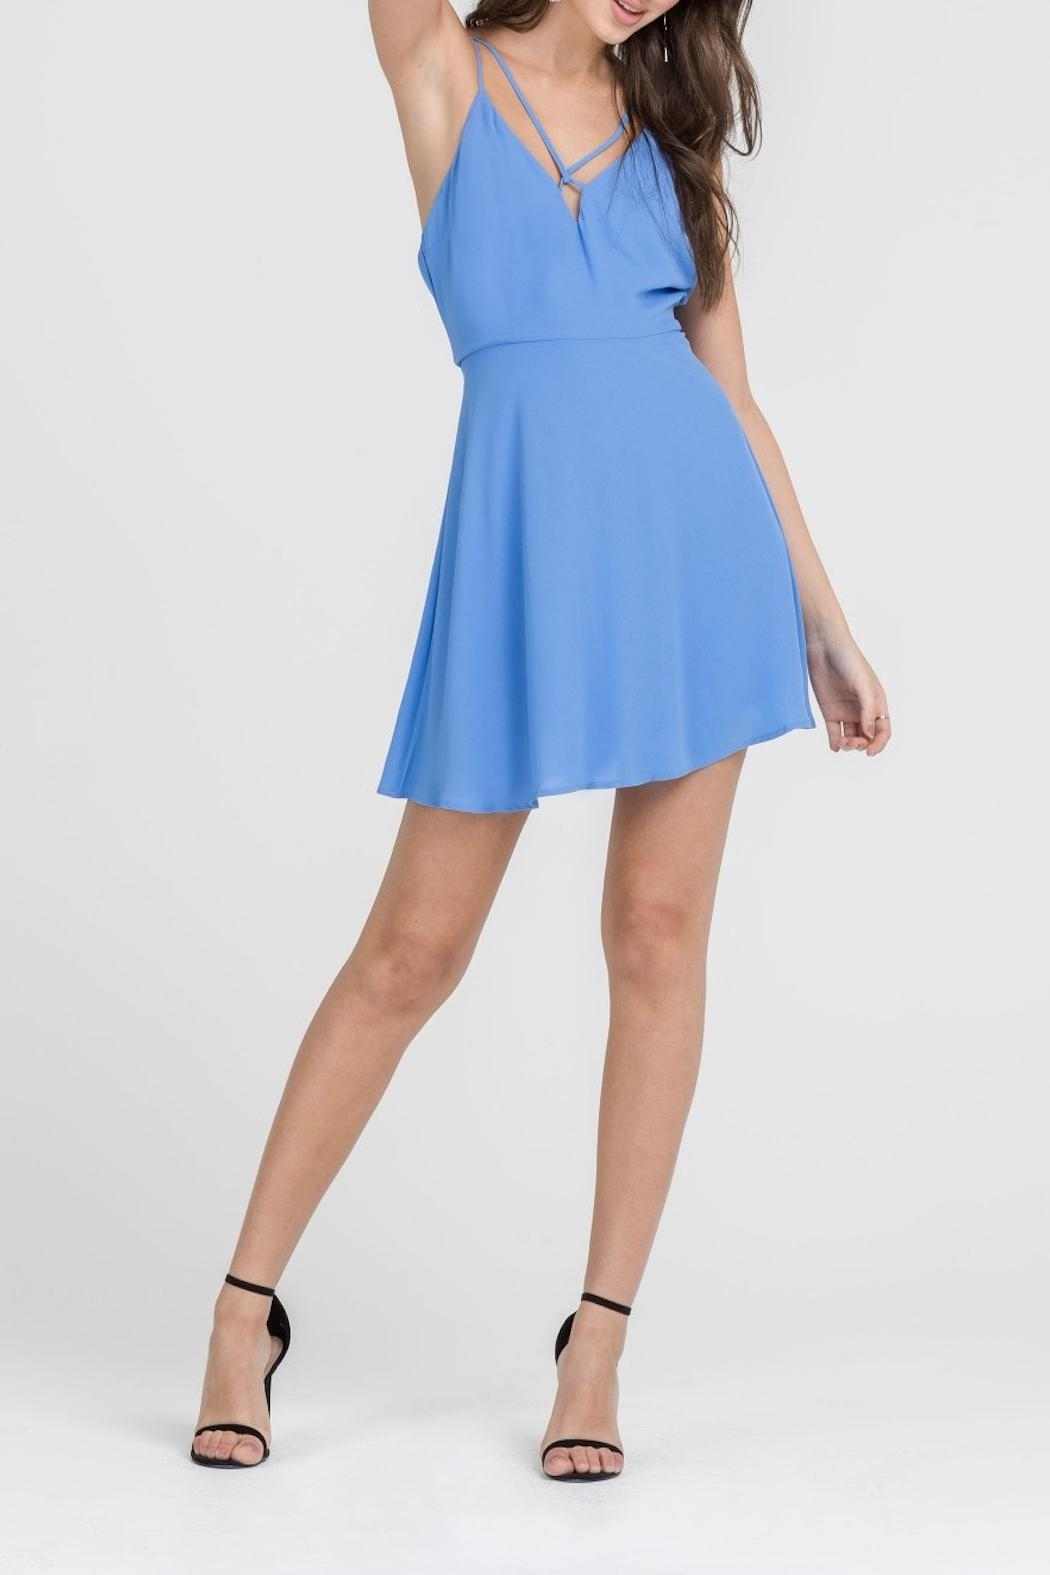 Apricot Lane Skater Girl Dress-Blue - Front Full Image